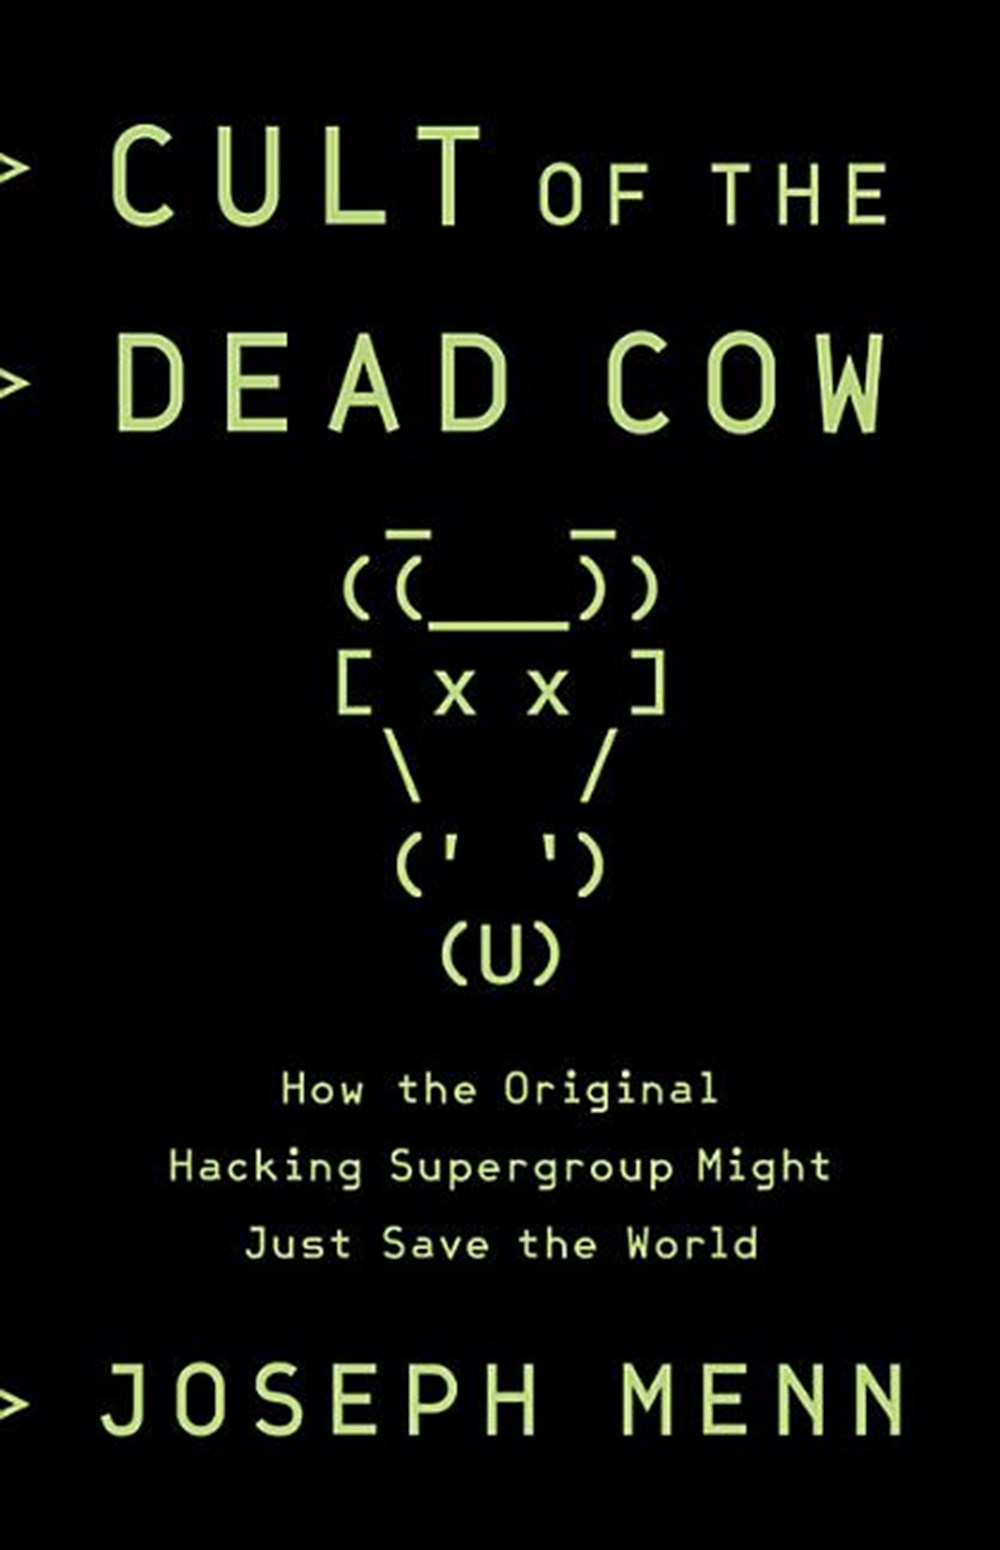 Cult of the Dead Cow How the Original Hacking Supergroup Might Just Save the World